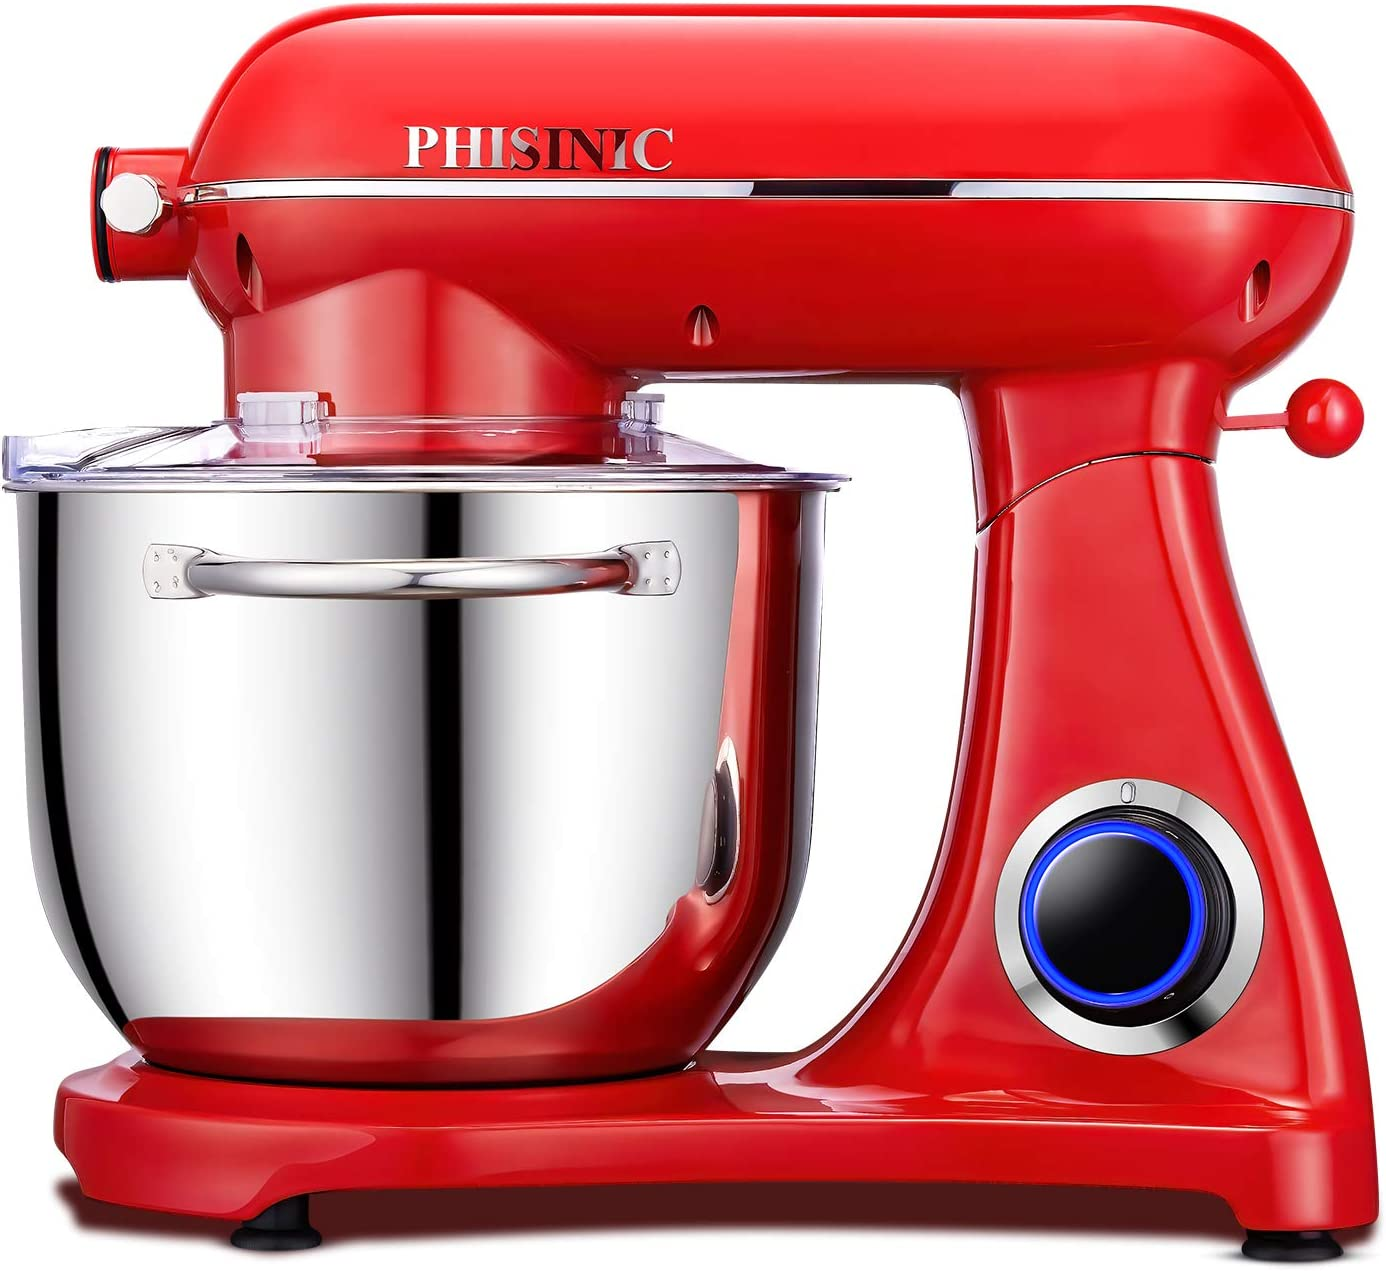 PHISINIC Stand Mixer, 6.5-QT 800W 6-Speed Tilt-Head Food Mixer, Kitchen Electric Mixer with Power Hub for Attachment (Red)